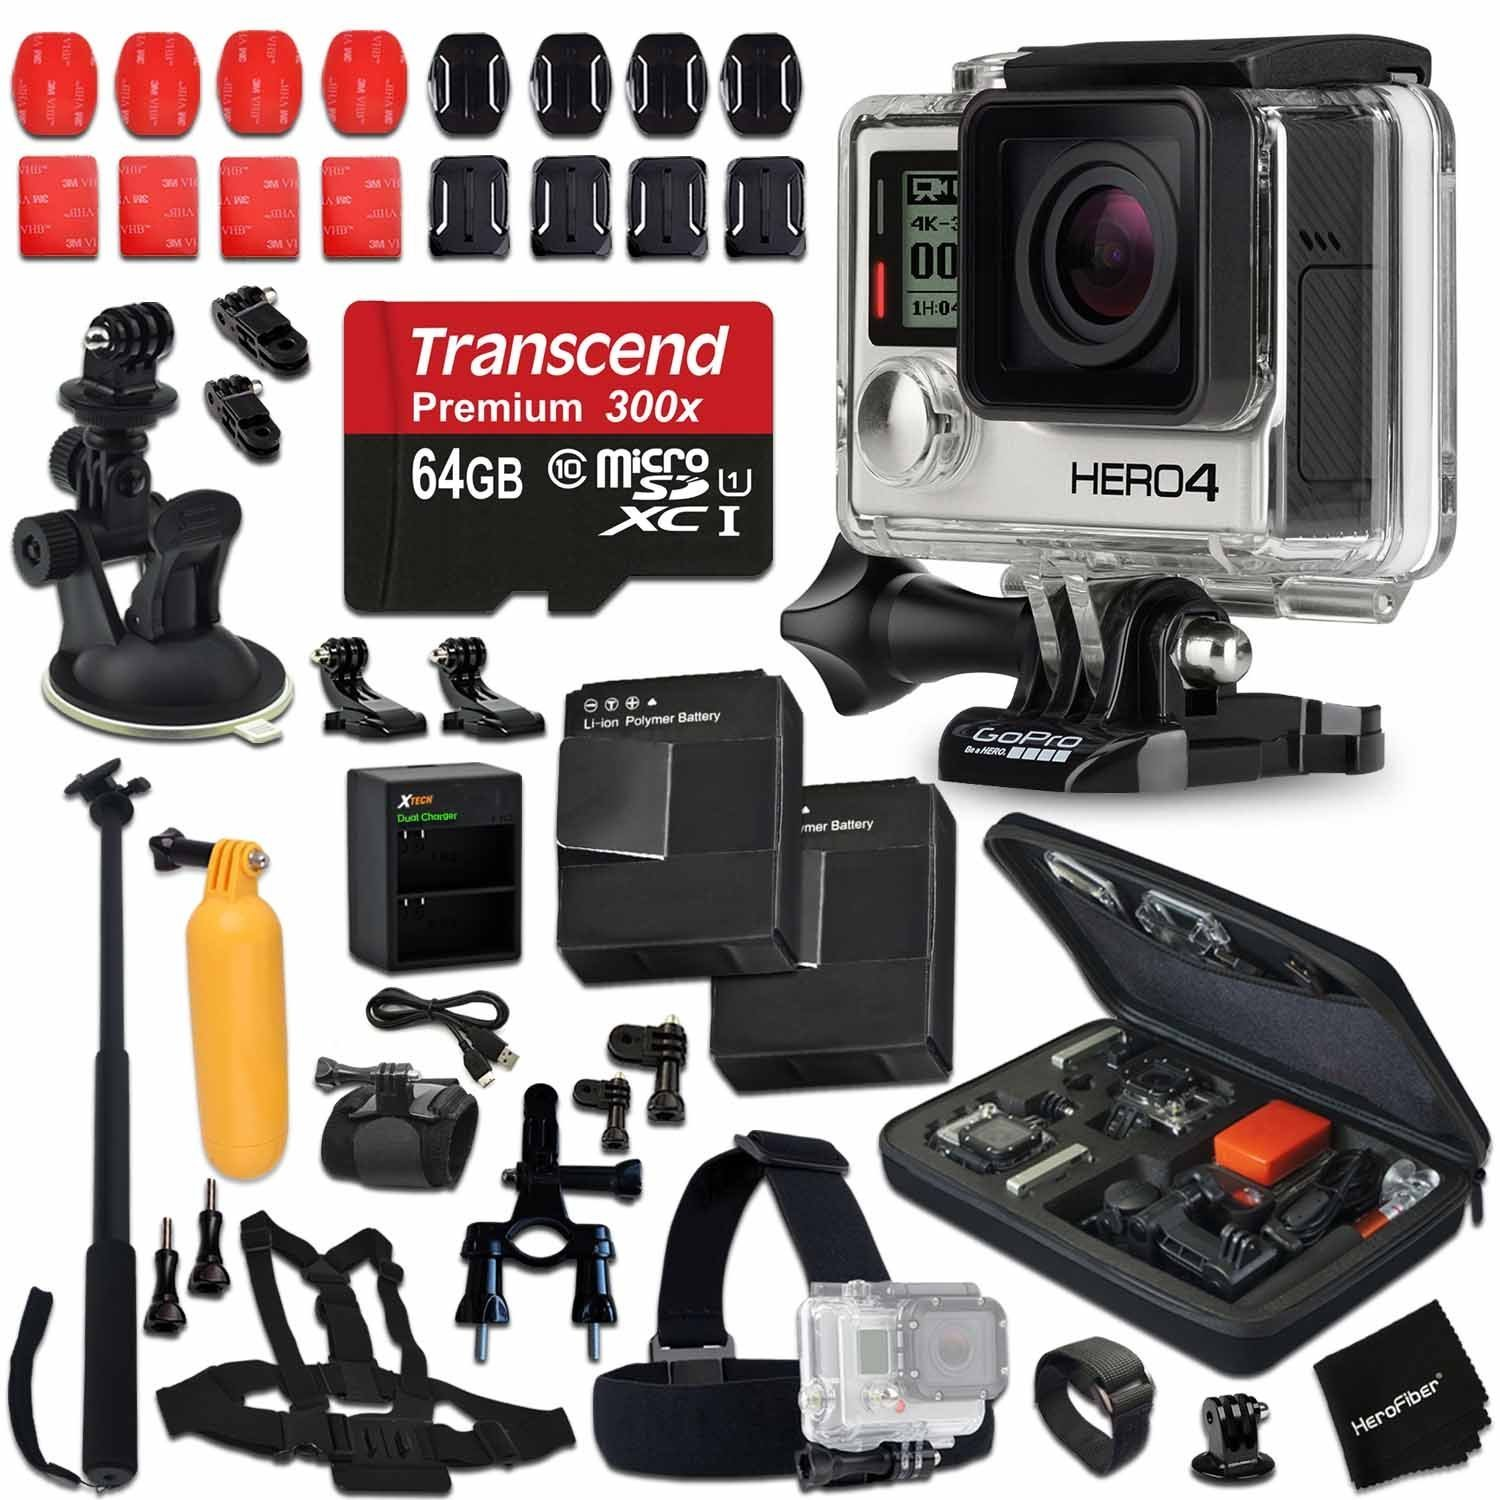 GoPro Hero 4 BLACK Edition Camera + 64GB High-Speed Memory Card + 2 AHDBT-401 Batteries + Dual charger + Custom Fitted Case + Car Mount + Head Strap + Chest Strap + Selfie Stick + Bike Mount + More by HeroFiber